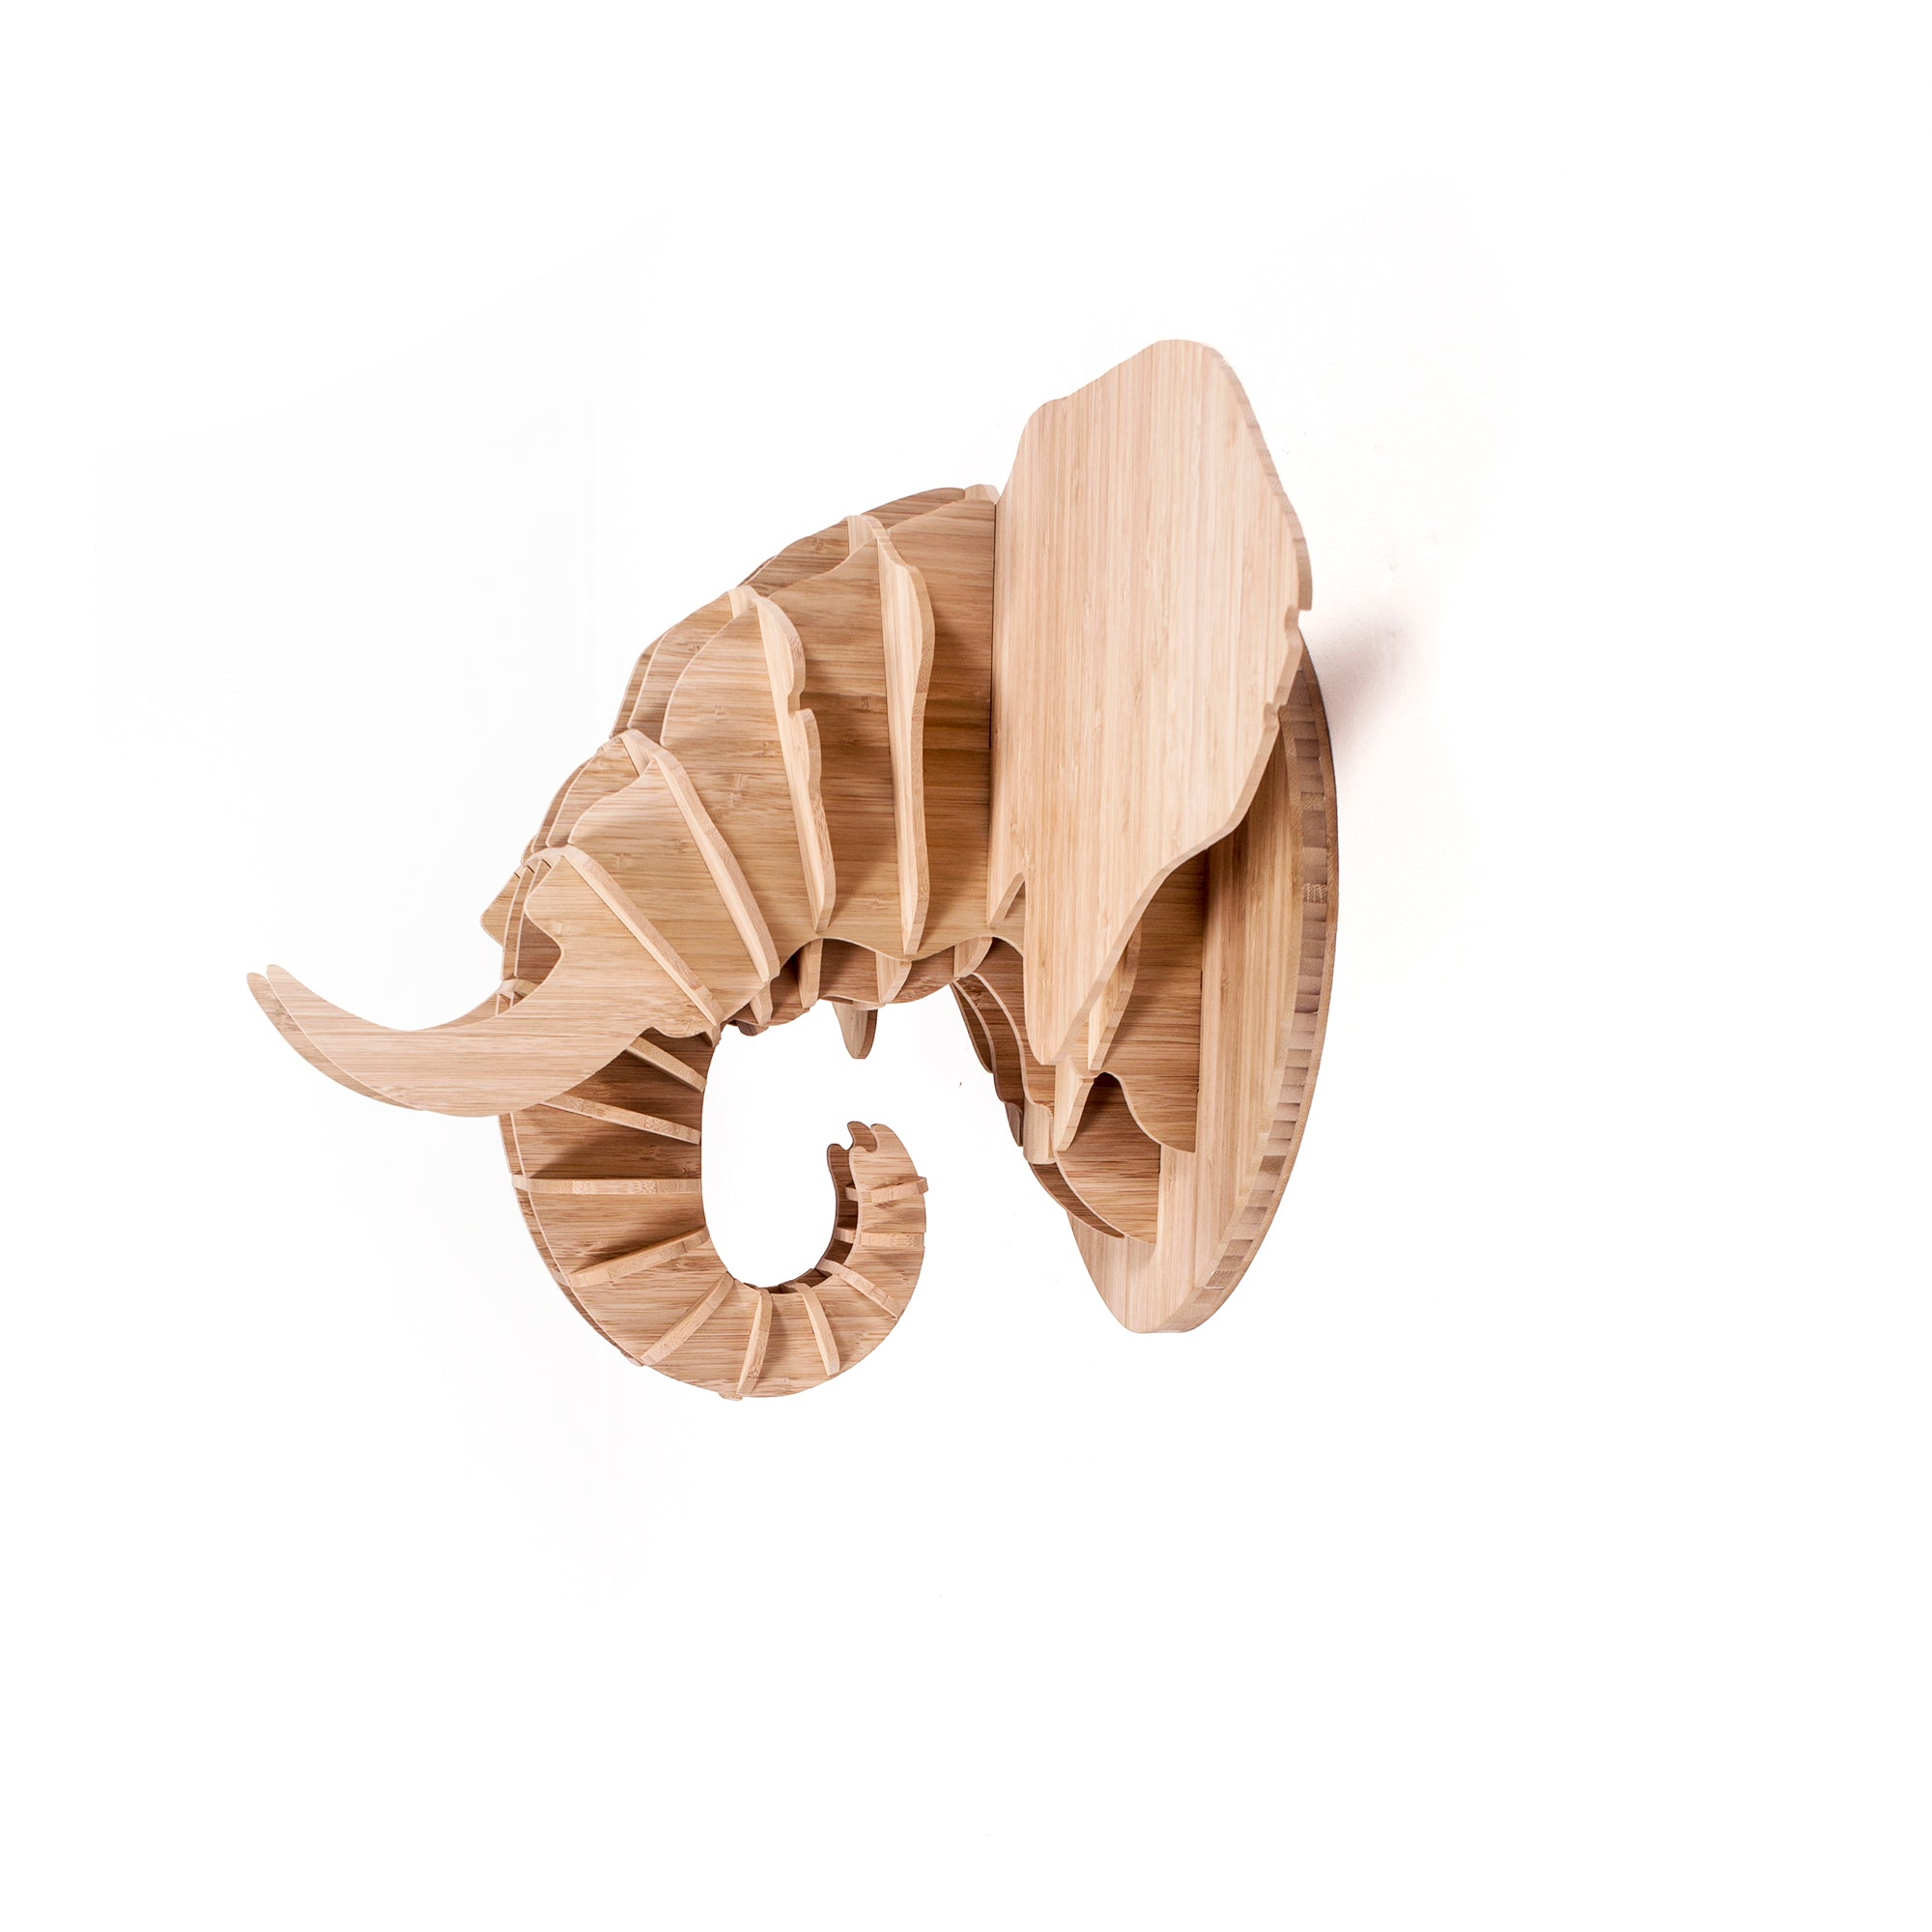 Elephant head sculpture in bamboo